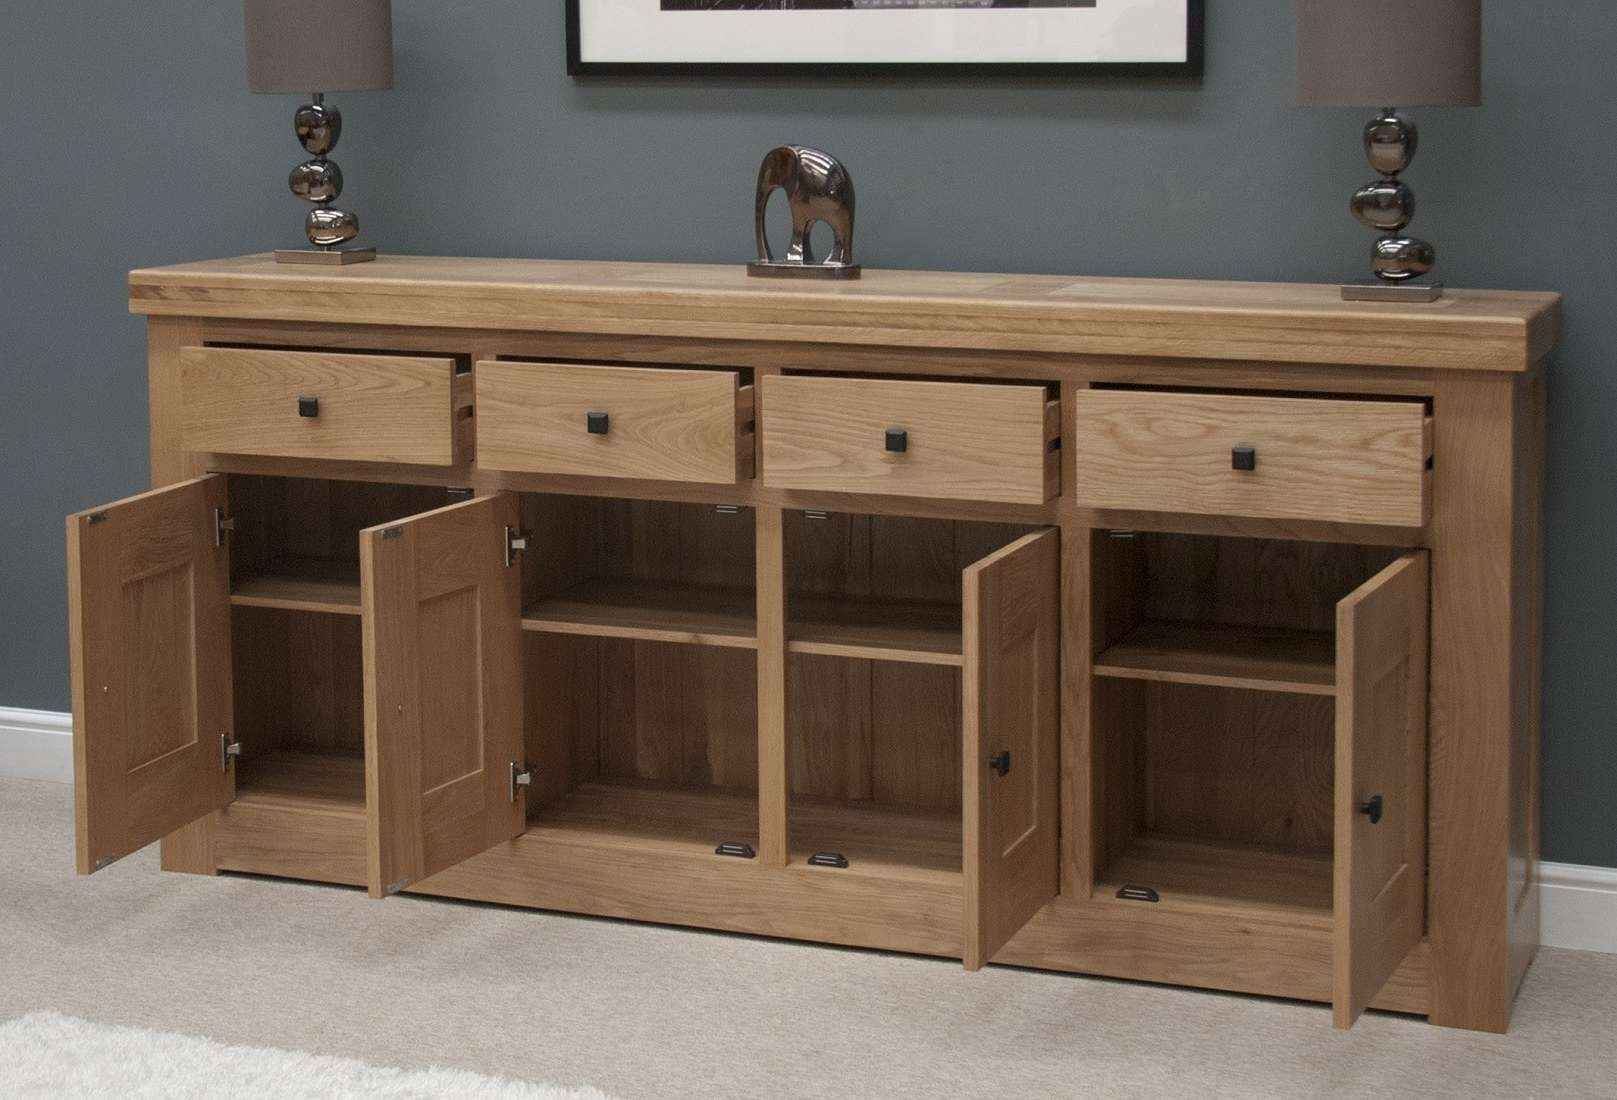 French Bordeaux Oak Extra Large 4 Door Sideboard | Oak Furniture Uk Throughout Rustic Oak Large Sideboards (View 14 of 20)